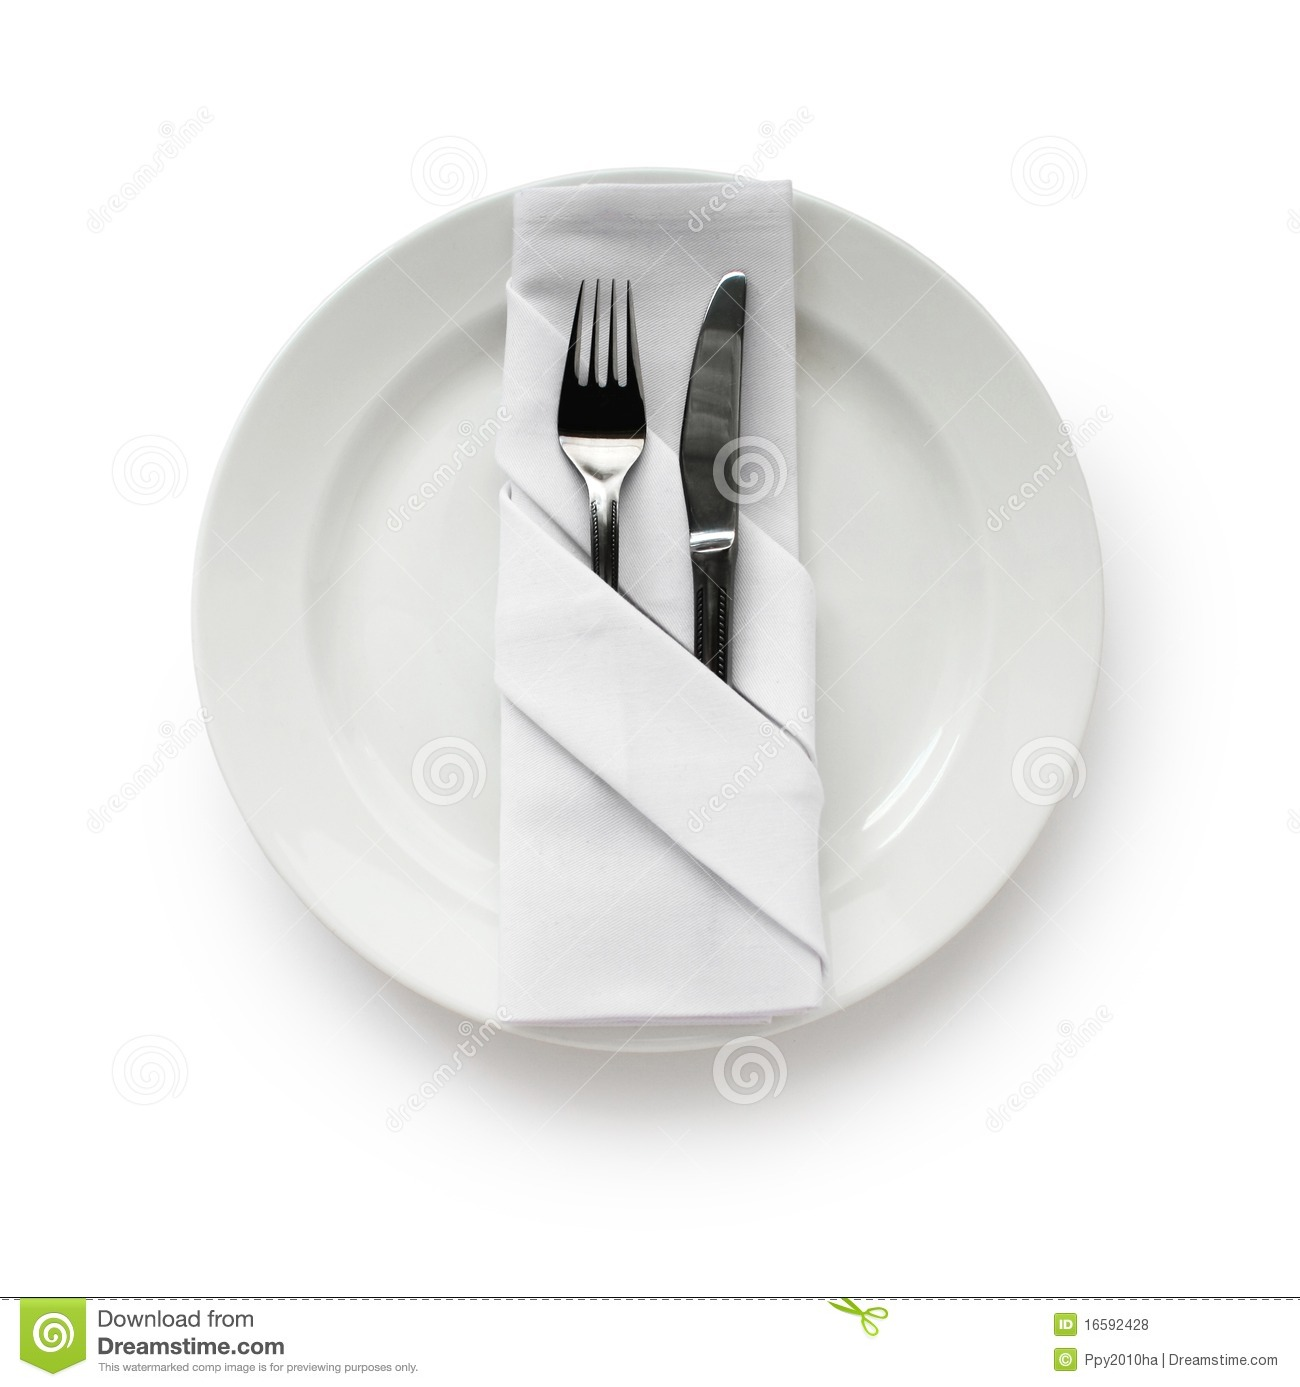 Download comp  sc 1 st  Dreamstime.com & Table SettingFolded Napkin Stock Photo - Image of banquet fold ...